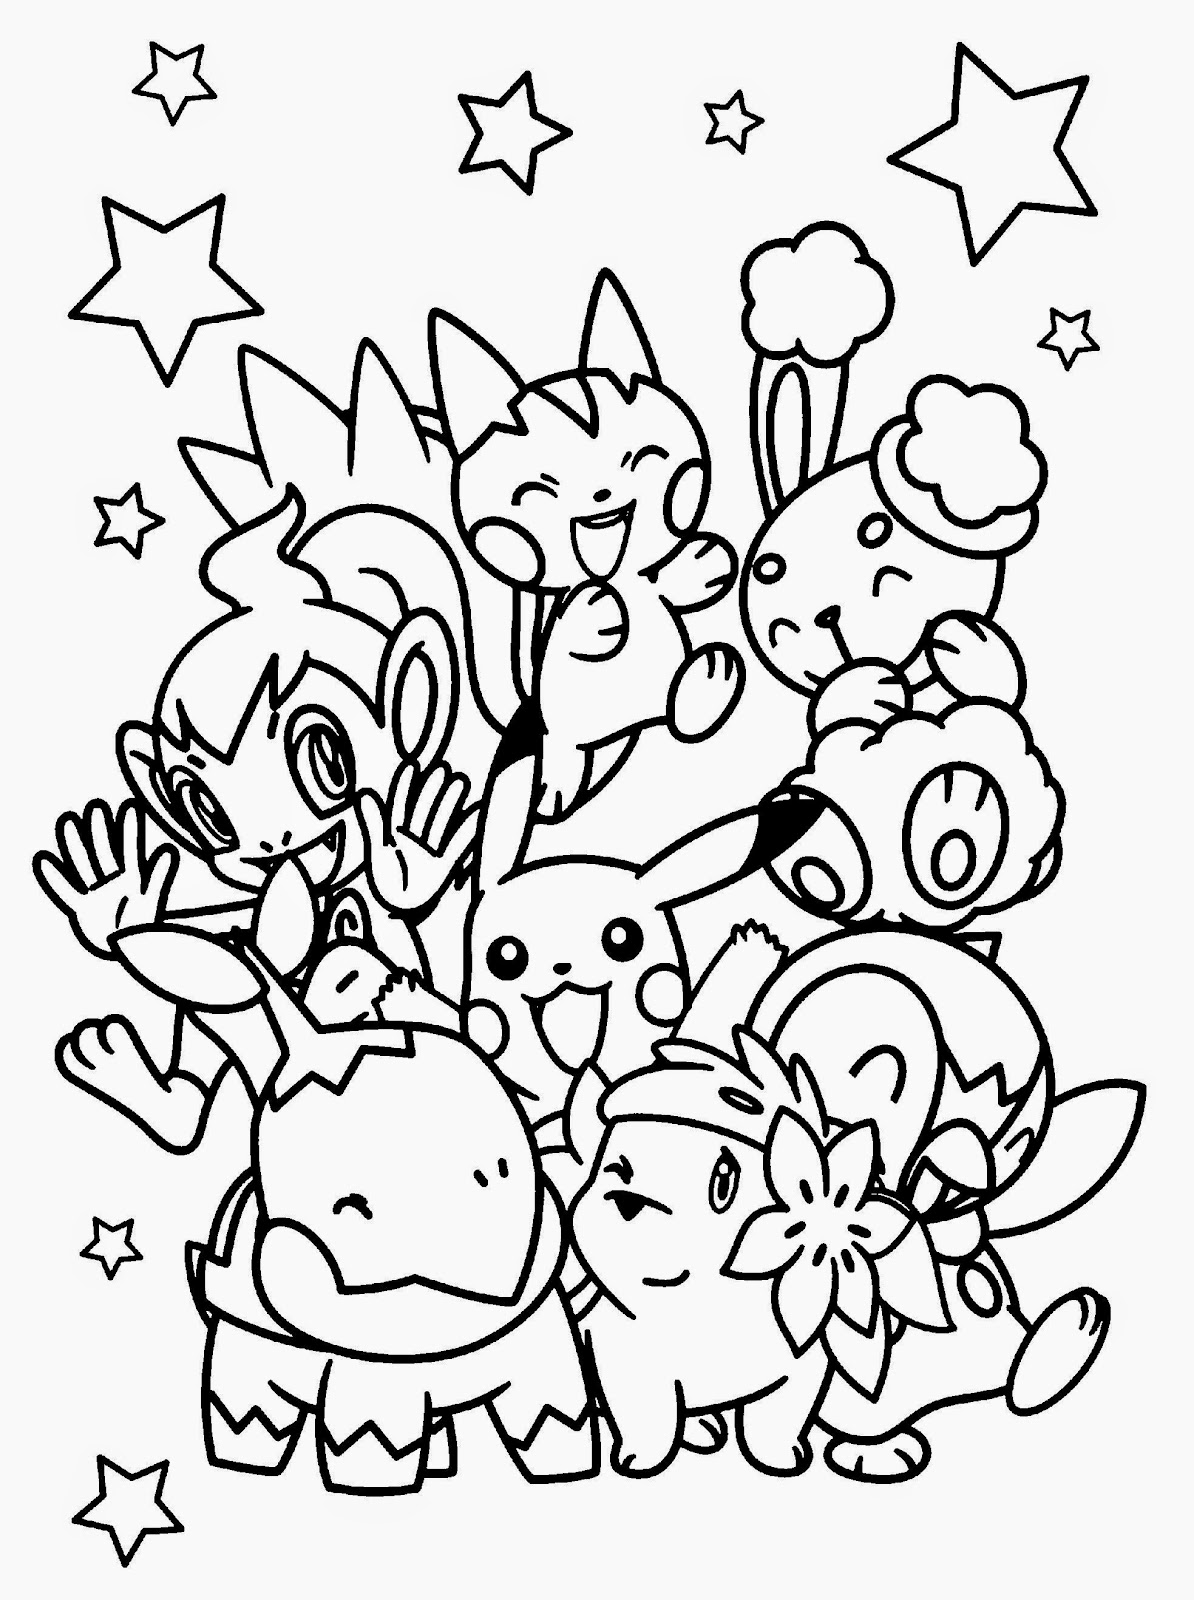 coloring pages to color online for free - pokemon coloring sheet free coloring sheet